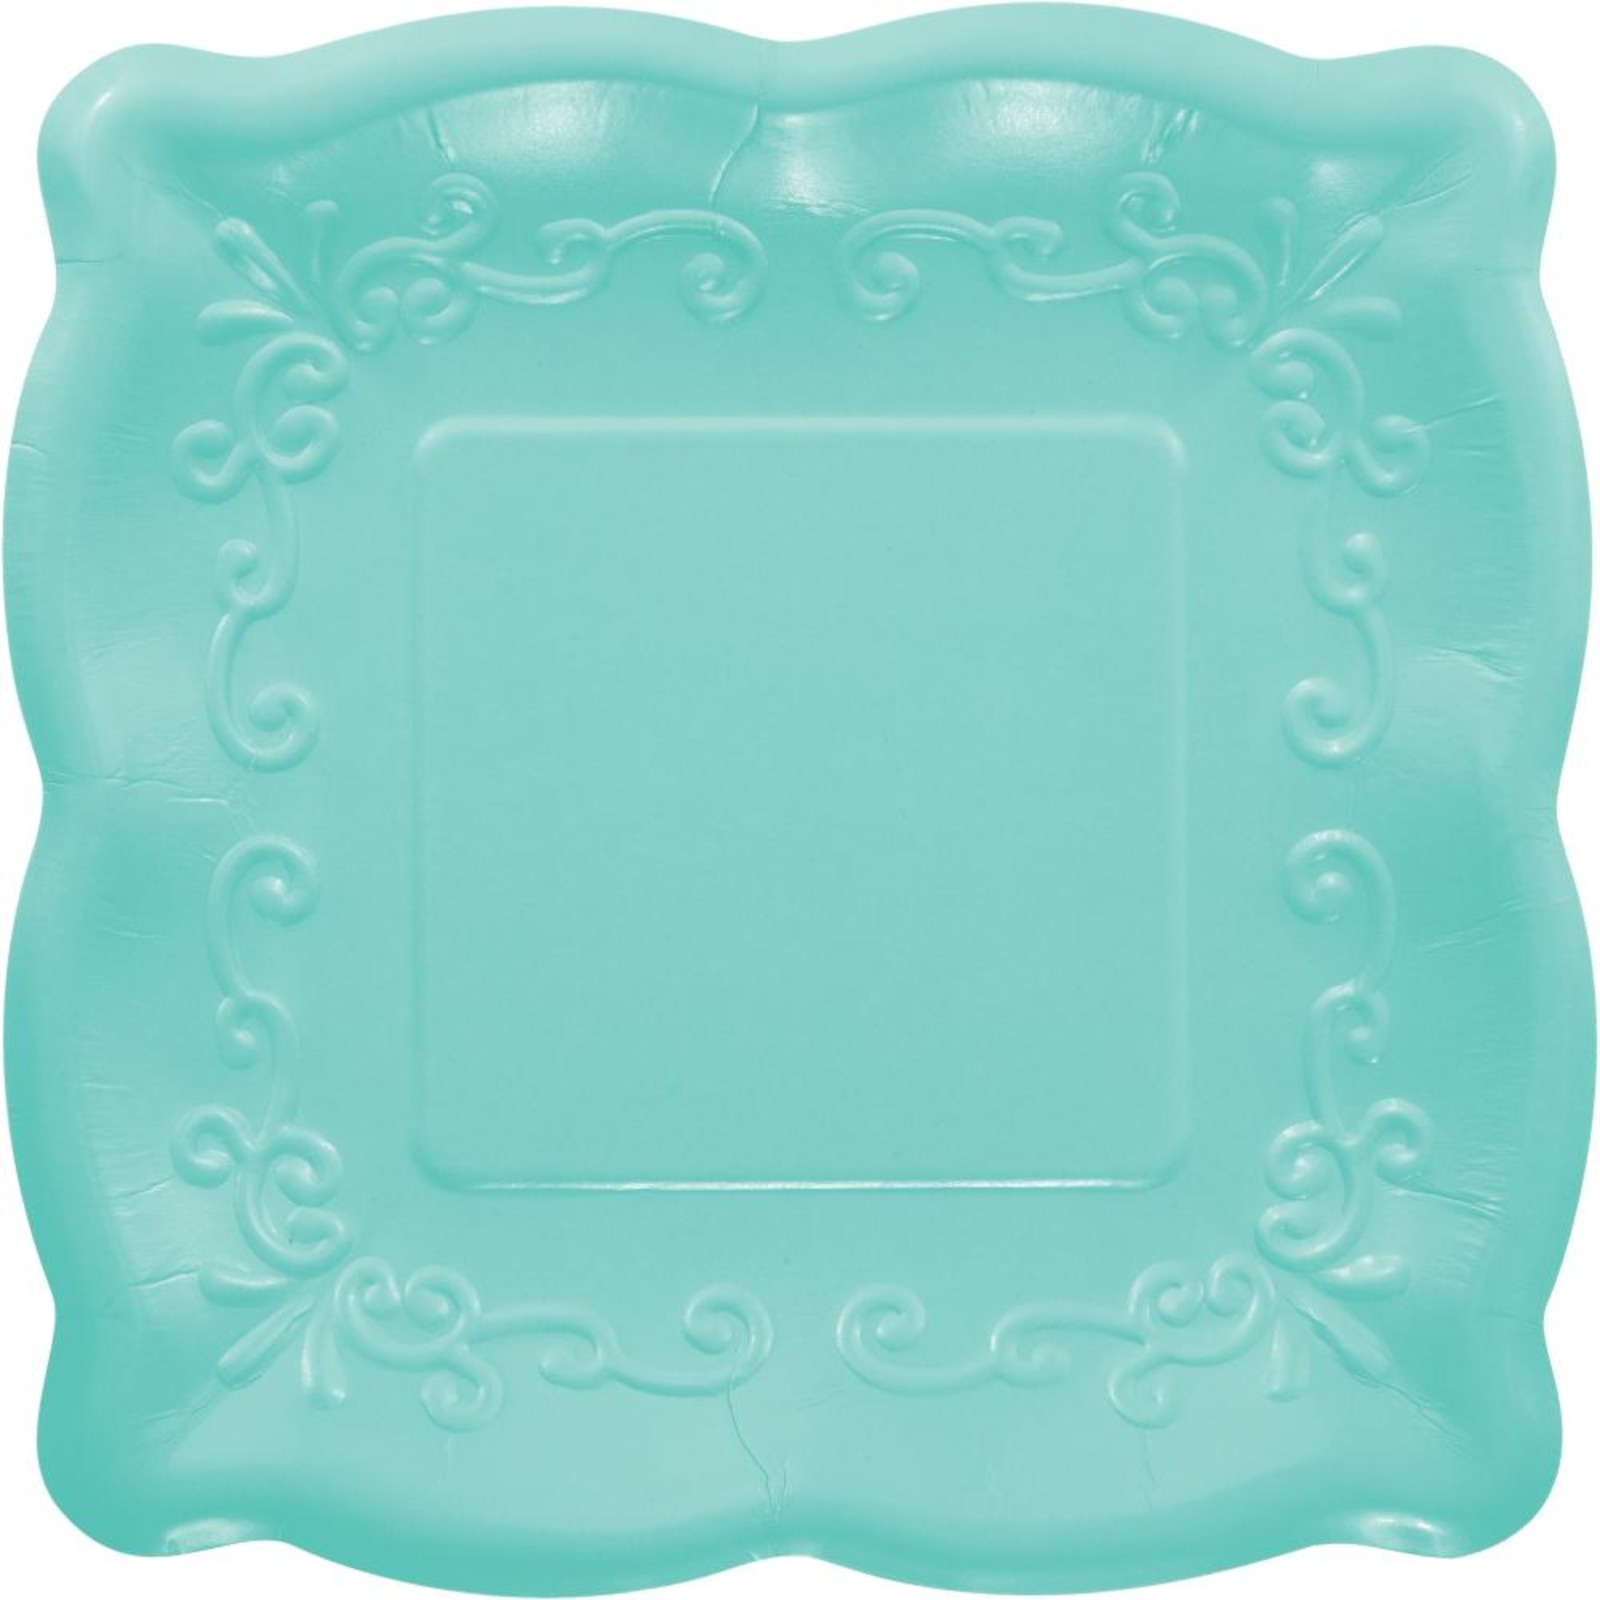 Creative Converting Teal 7 Inch Embossed Square Plates